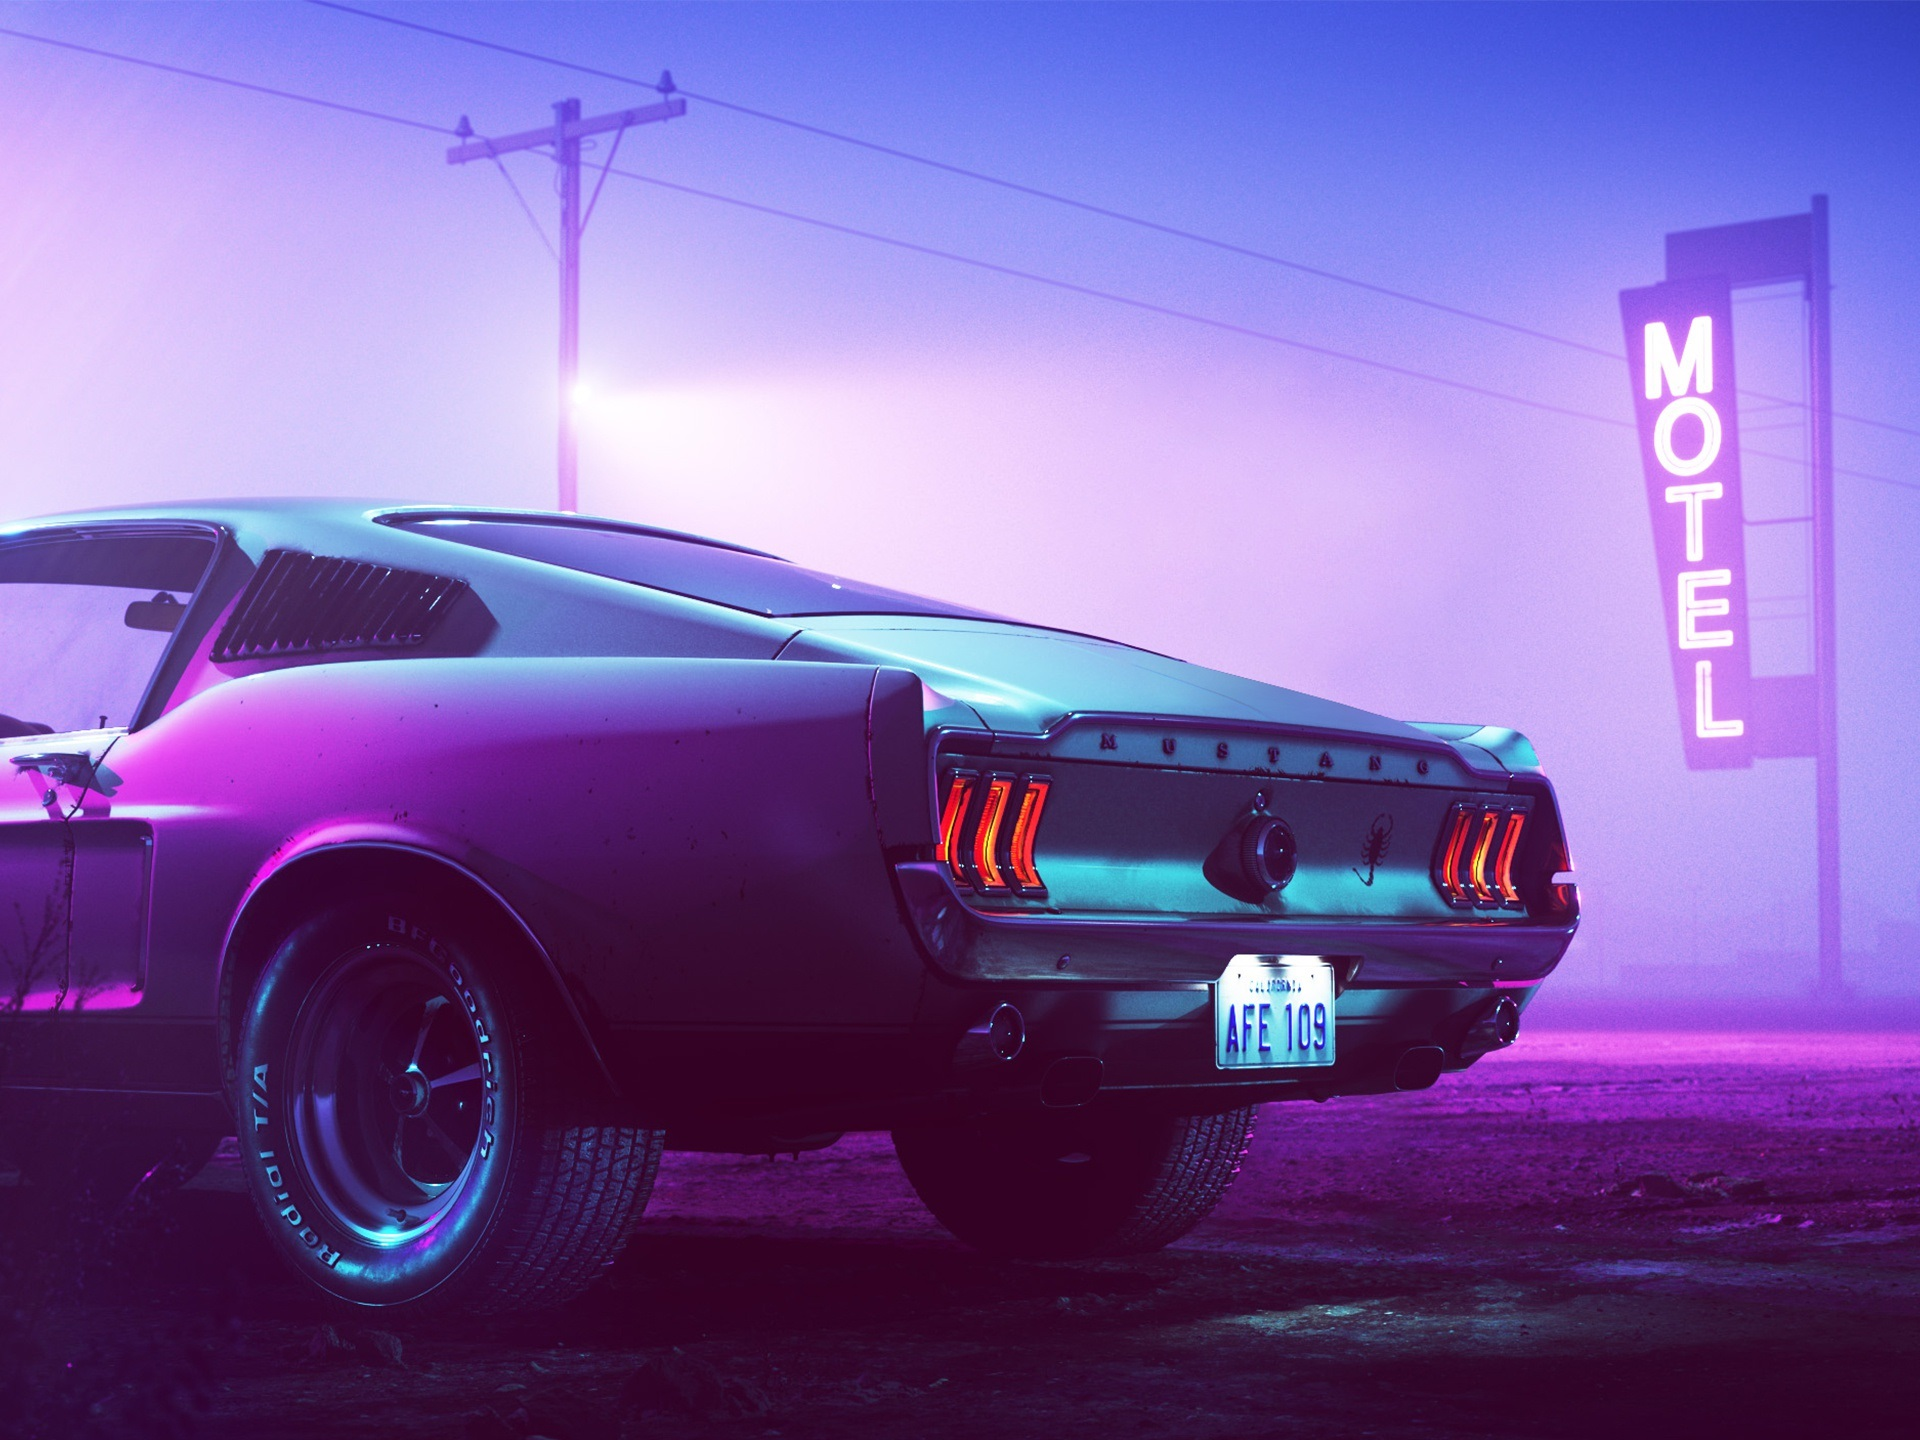 Wallpaper 1969 Ford Mustang Car Back View Motel Neon Night